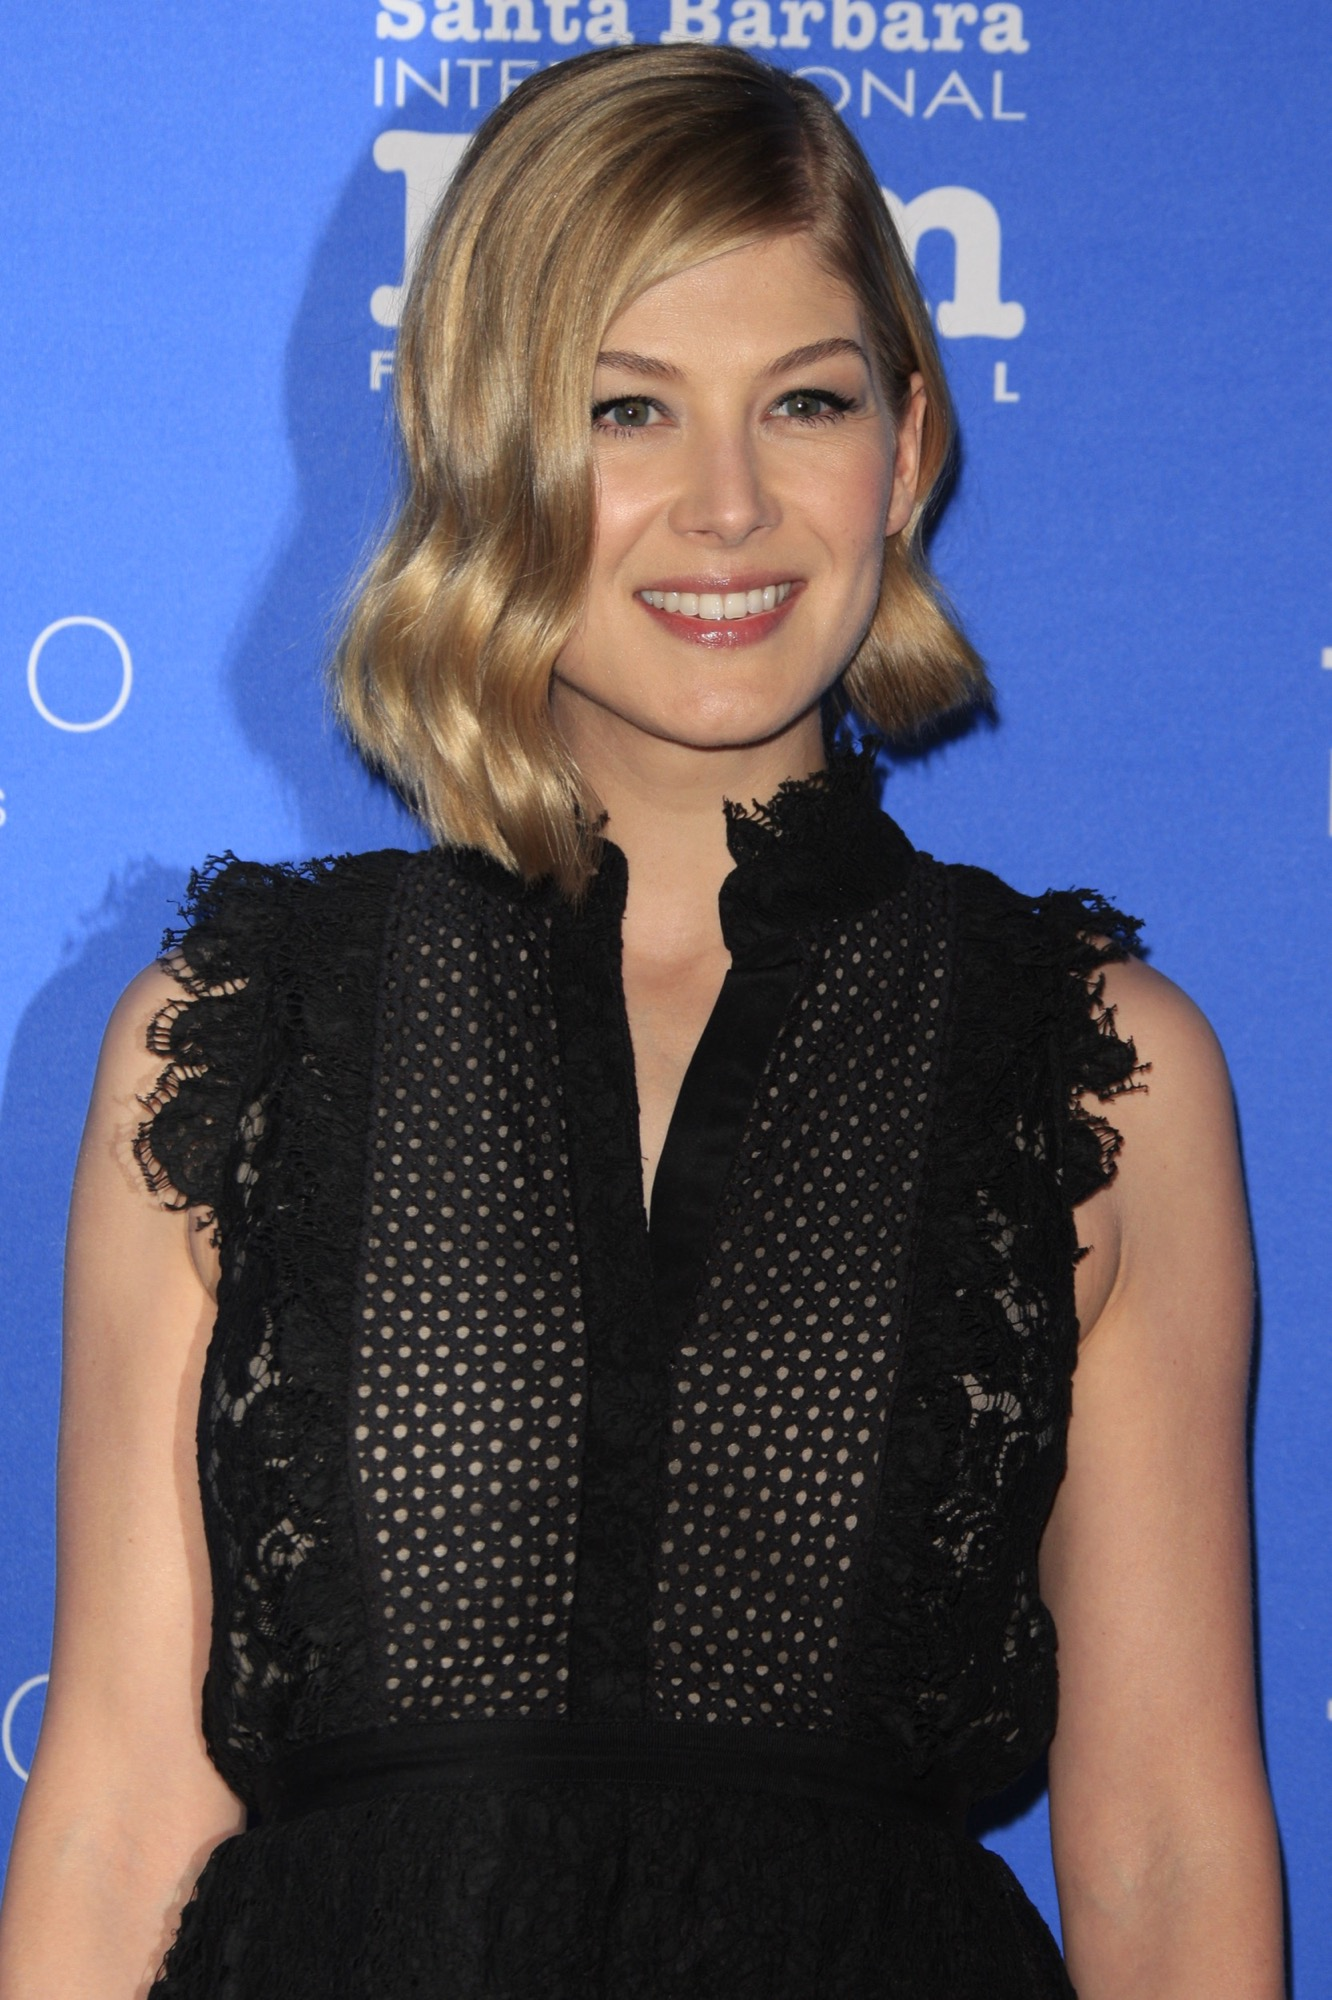 rosamund-pike-erdem-virtuoso-awards-30th-santa-barbara-international-film-festival